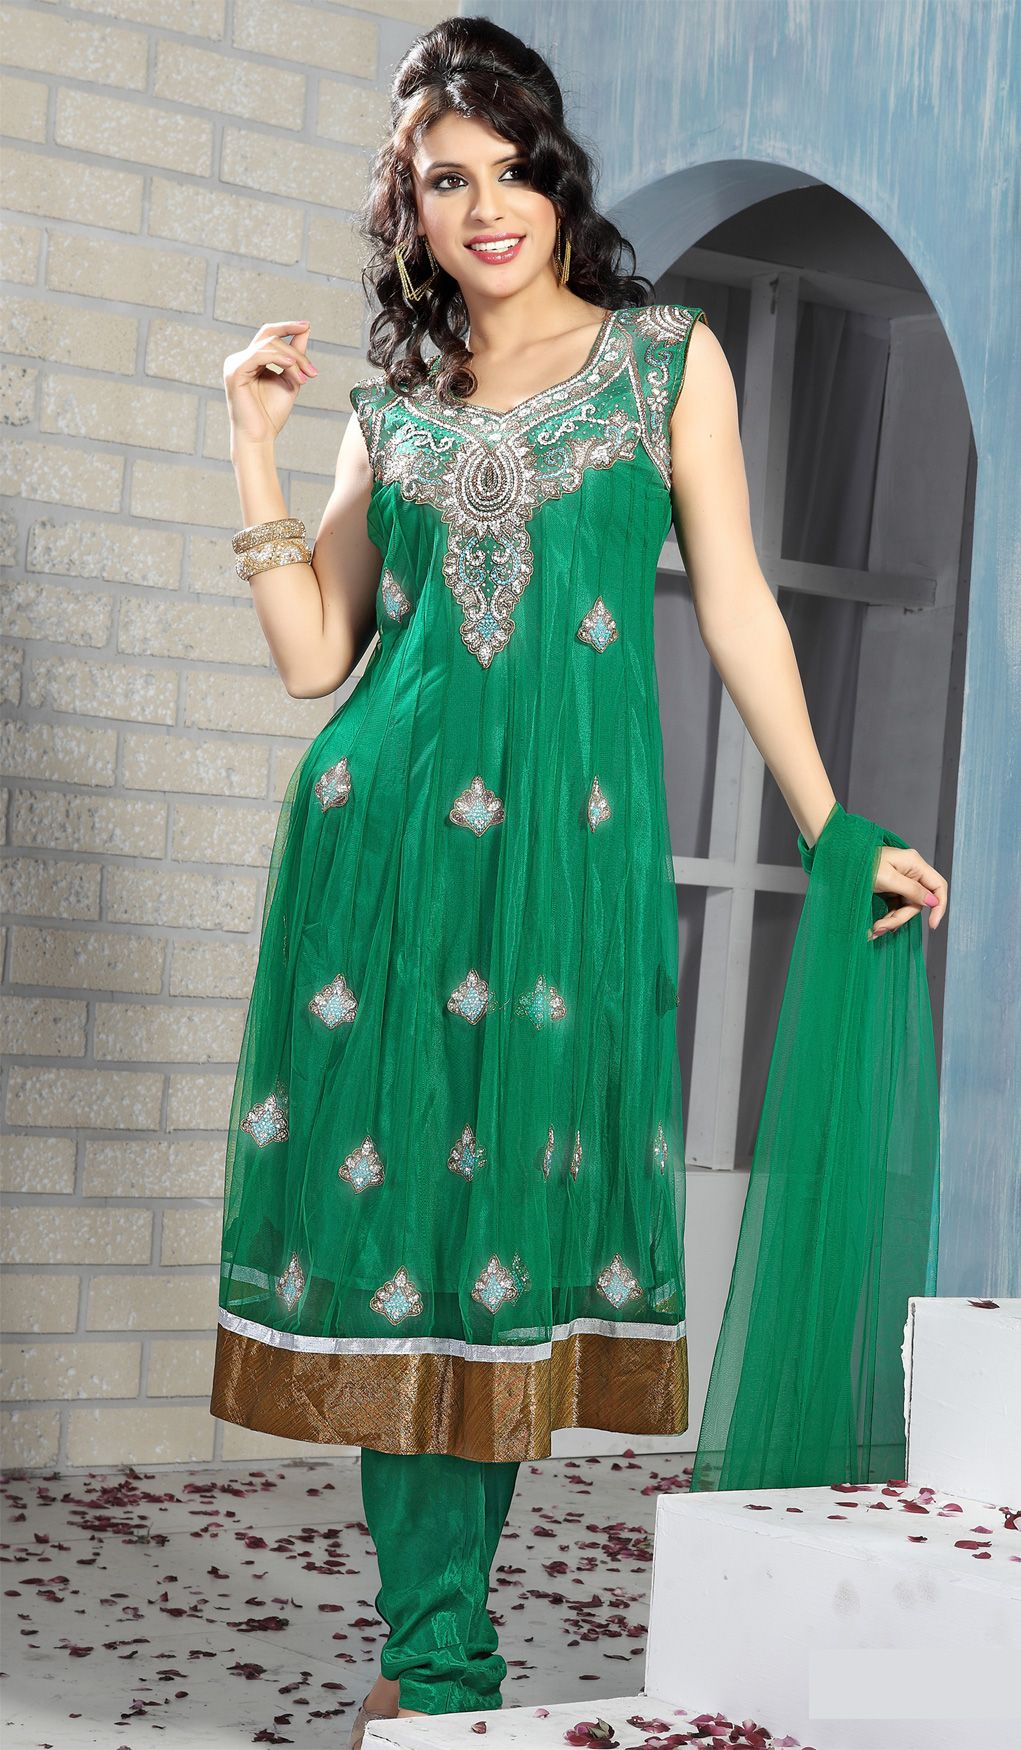 Jade Green Net Classic Indian Wedding Salwar Kameez | Churidar ...